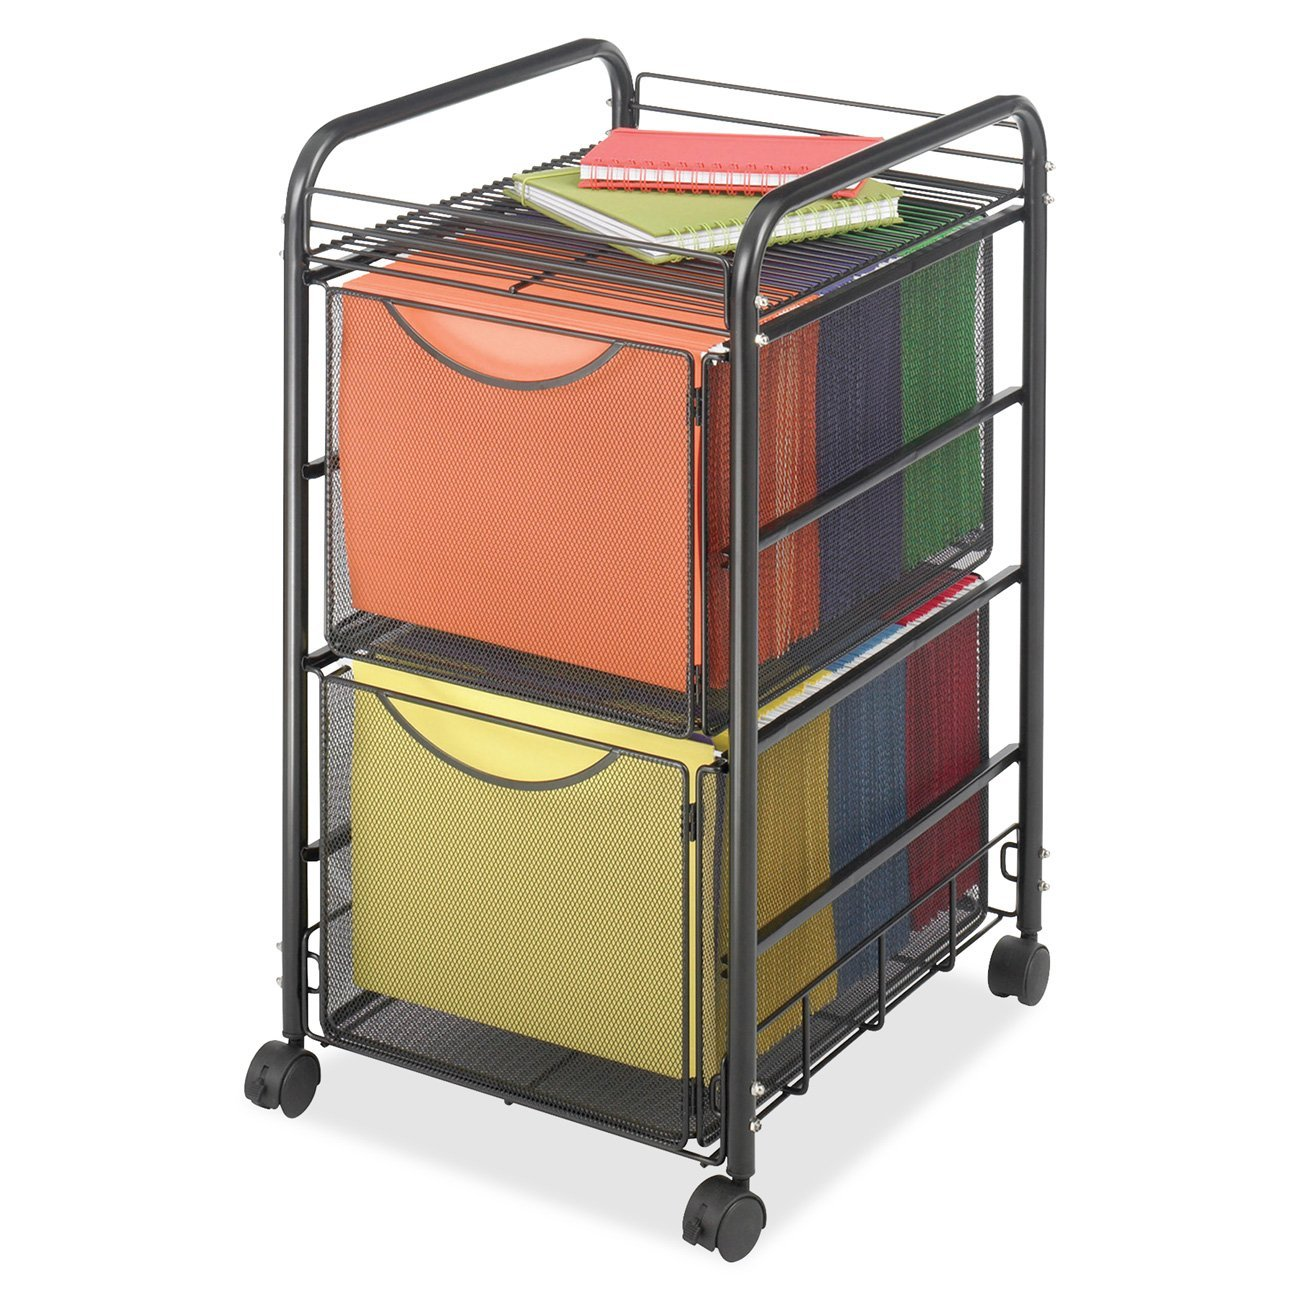 Safco Products 5212BL Onyx Mesh File Cart with 2 File Drawers, Letter Size, Black (Renewed) by Safco Products